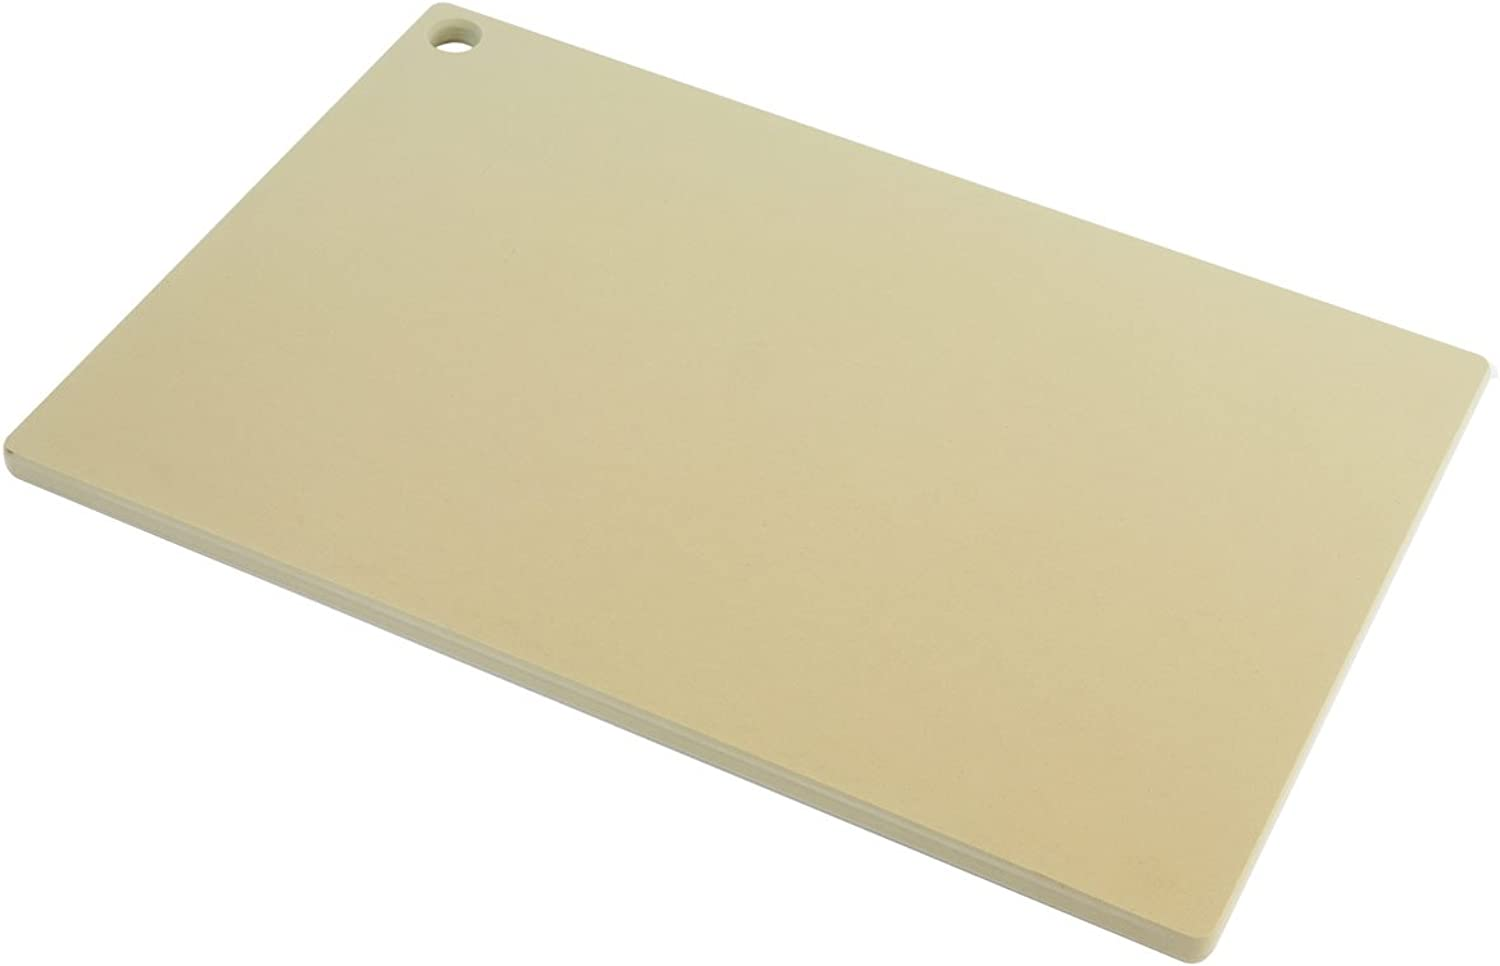 Professional Rubber Cutting Board, 18x12 - Cut Proof Synthetic Surface for Premium Knives